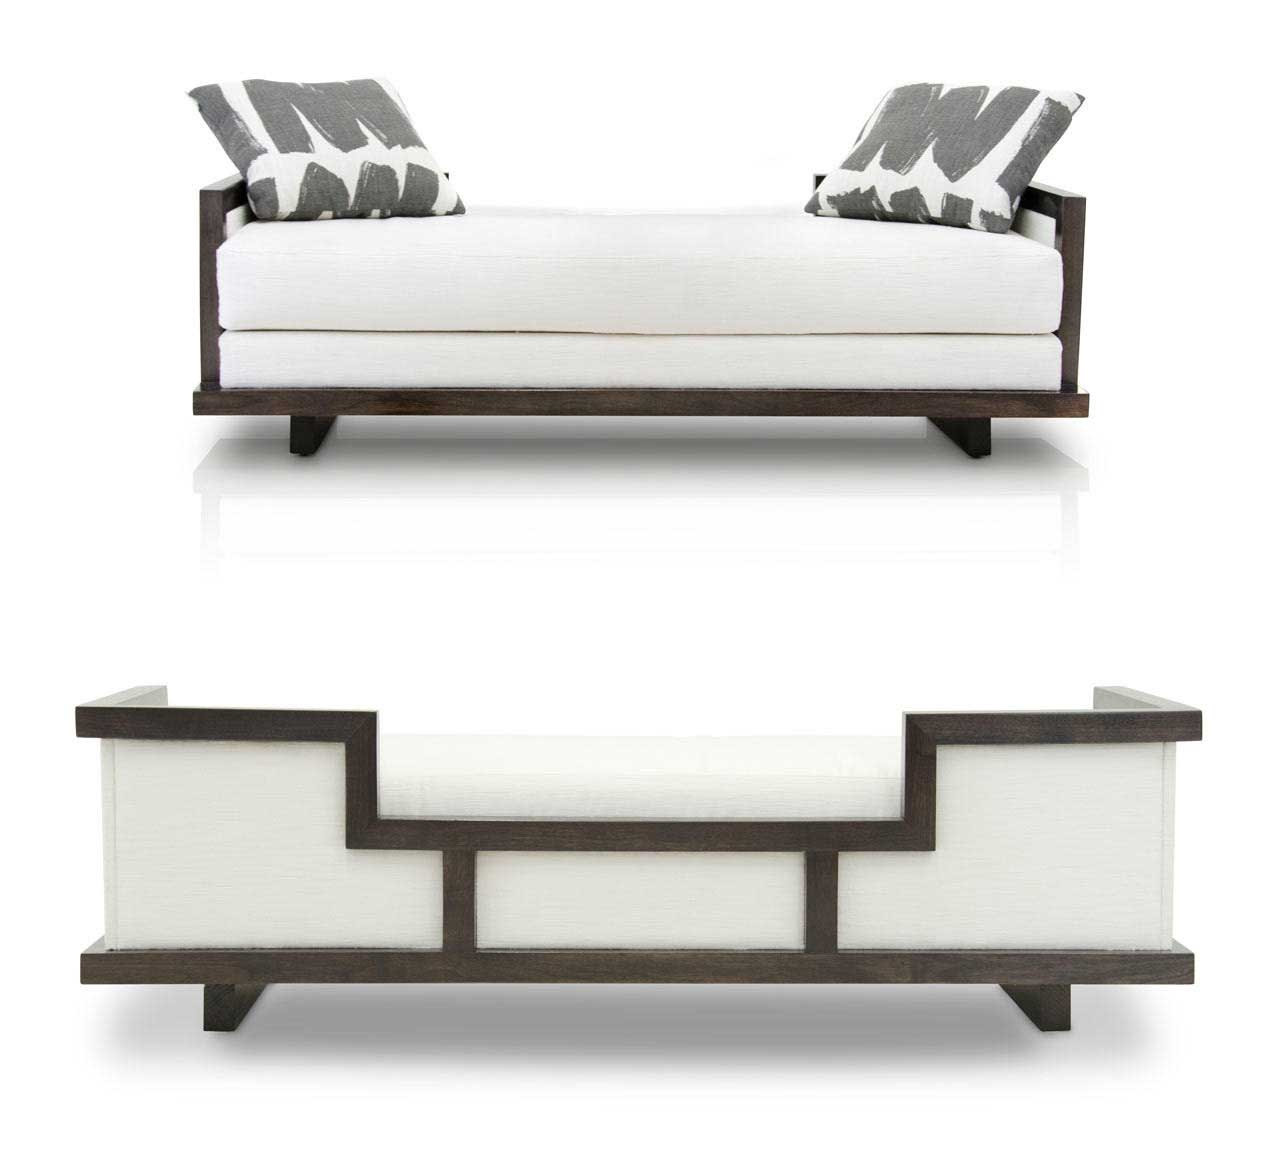 Tao daybed  by  Hellman-Chang